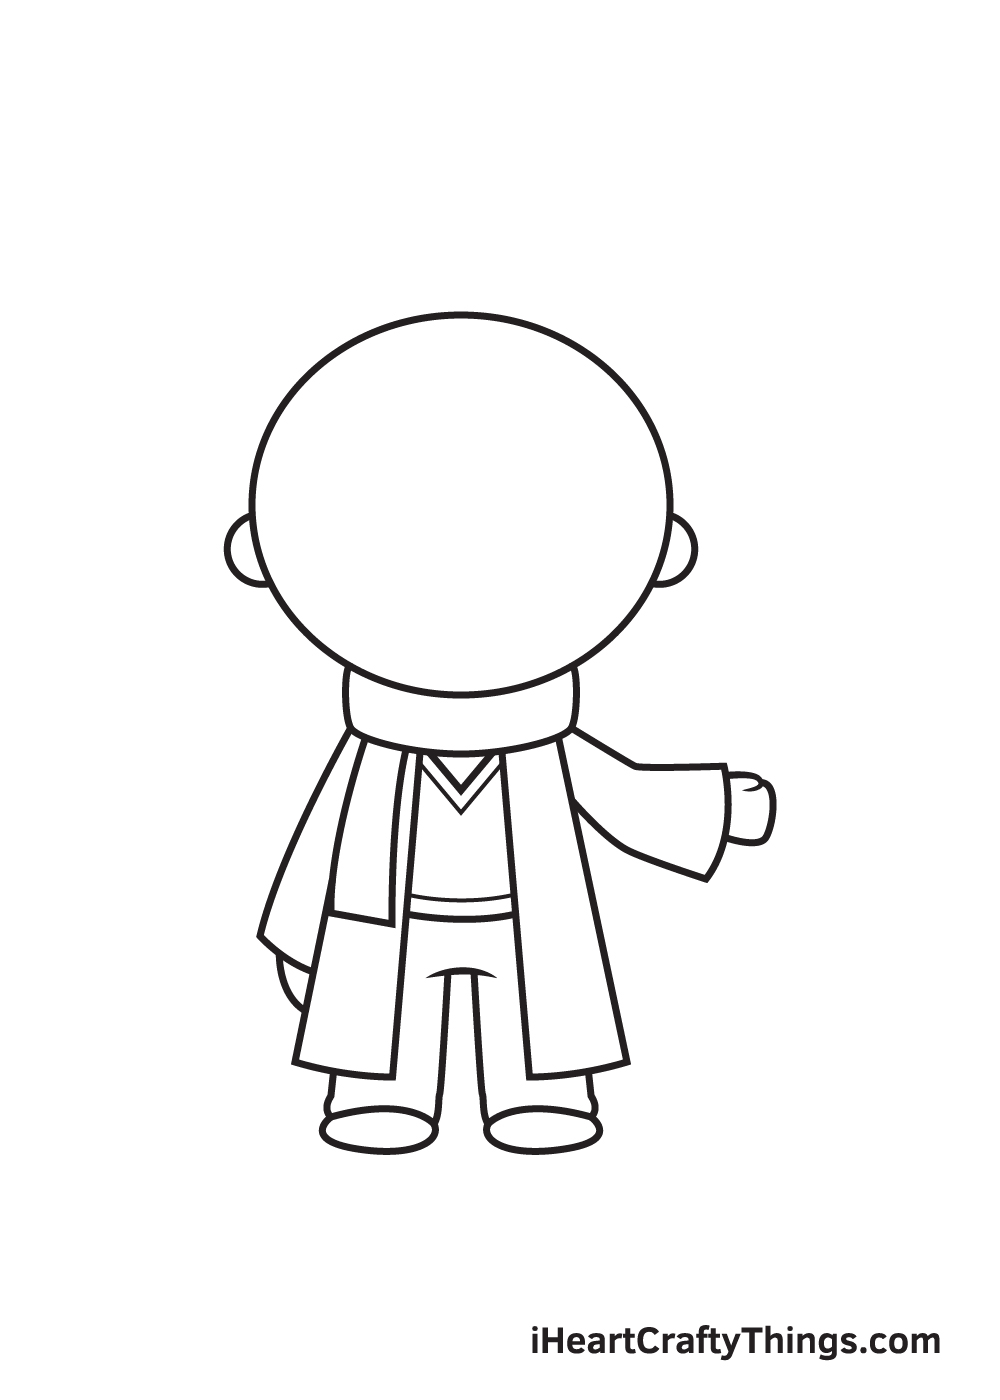 Harry Potter Drawing – Step 6